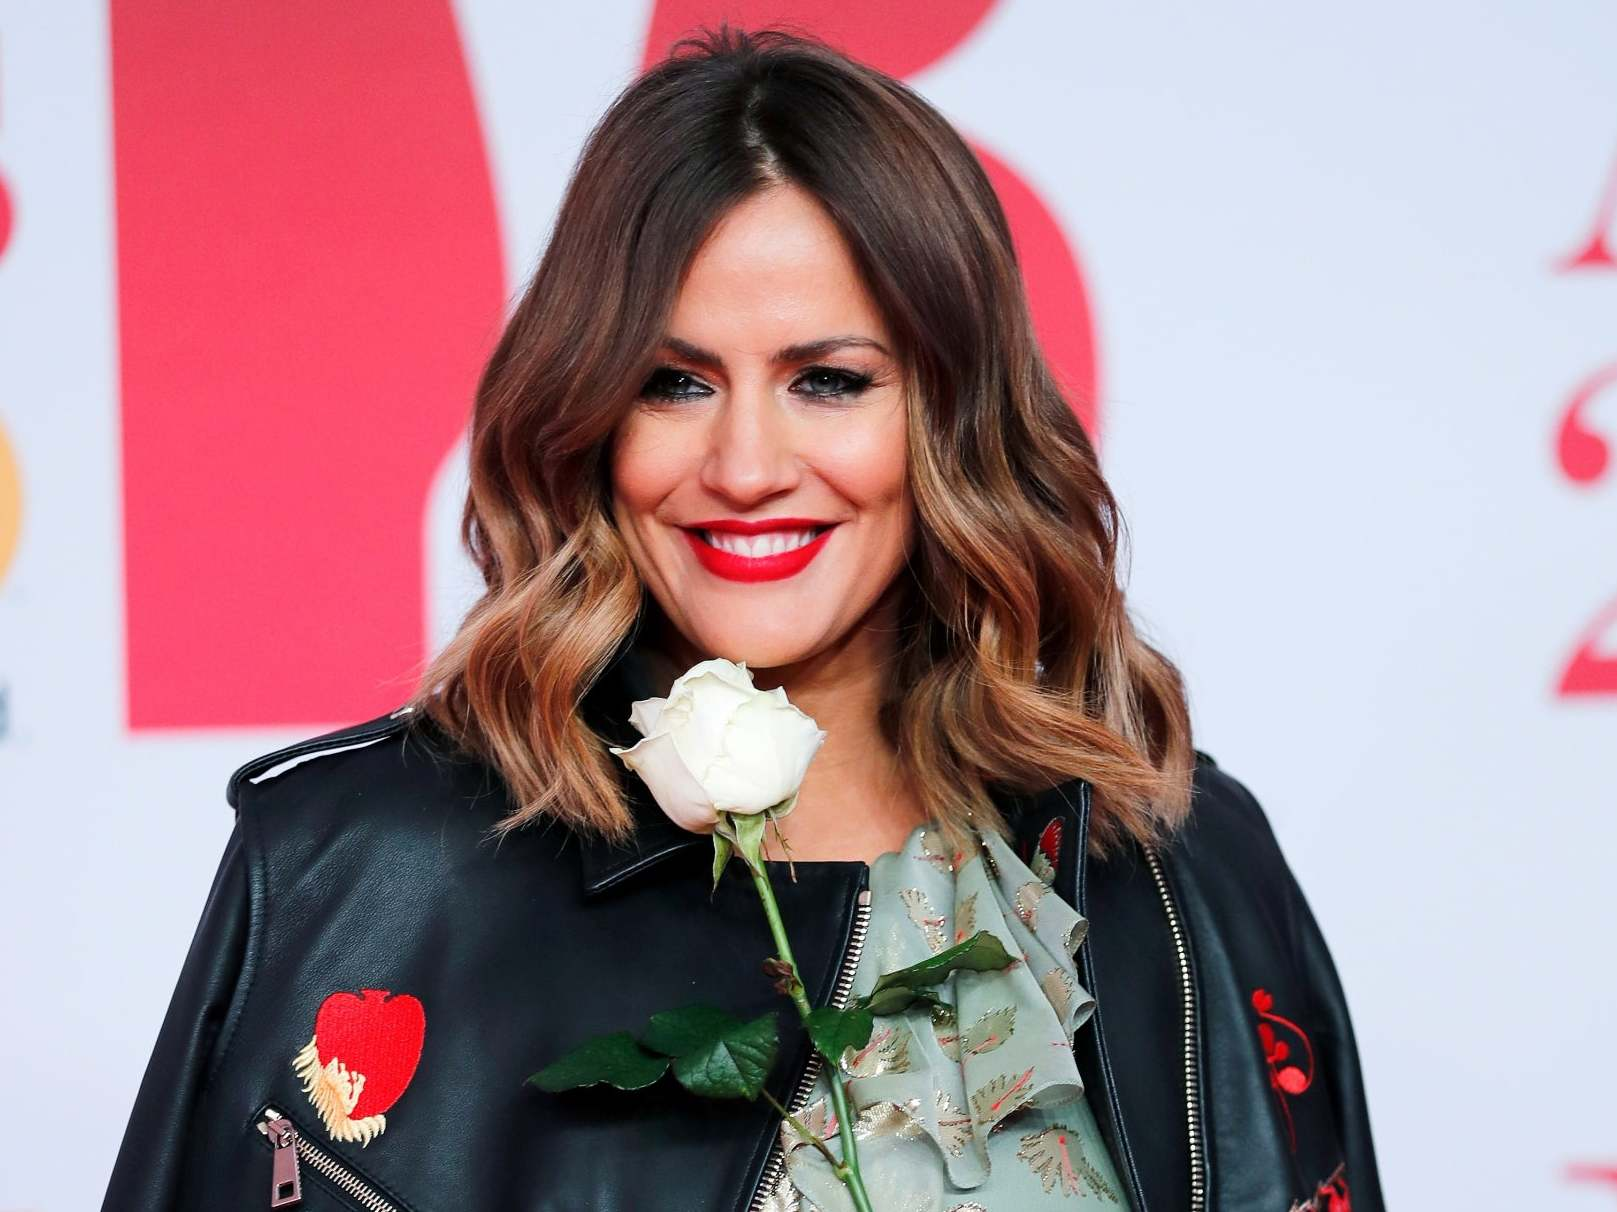 UK salons are banning gossip magazines in the wake of Caroline Flack's death